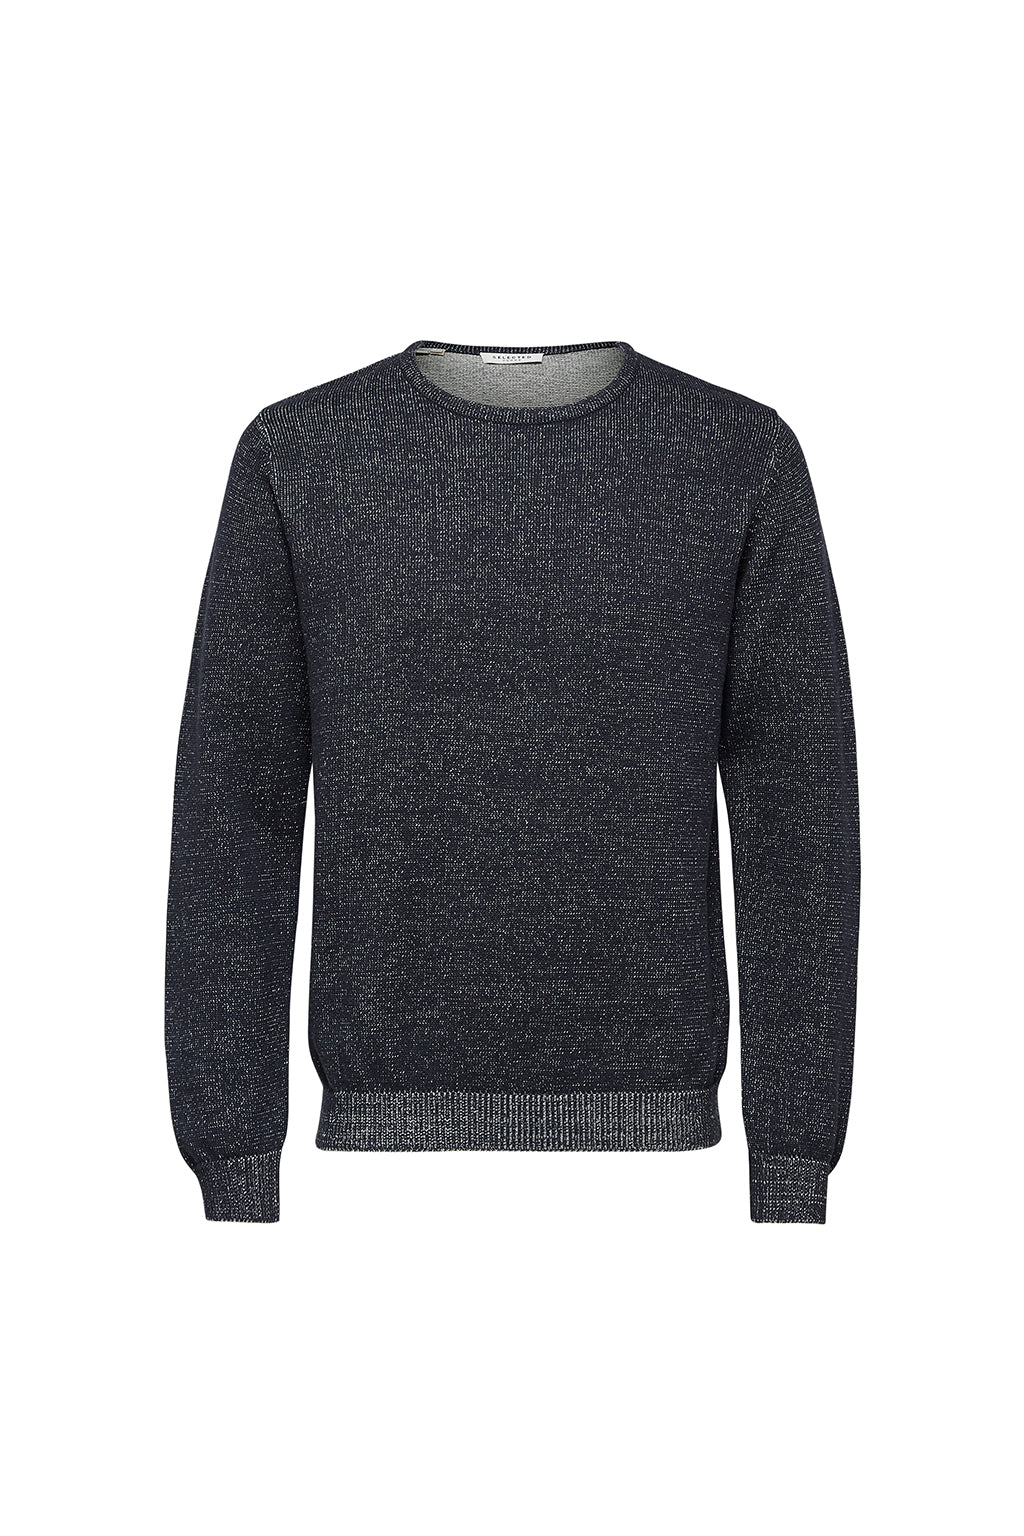 Andrew Camp Crew Neck - Dark Navy/Bone White - Audace Copenhagen